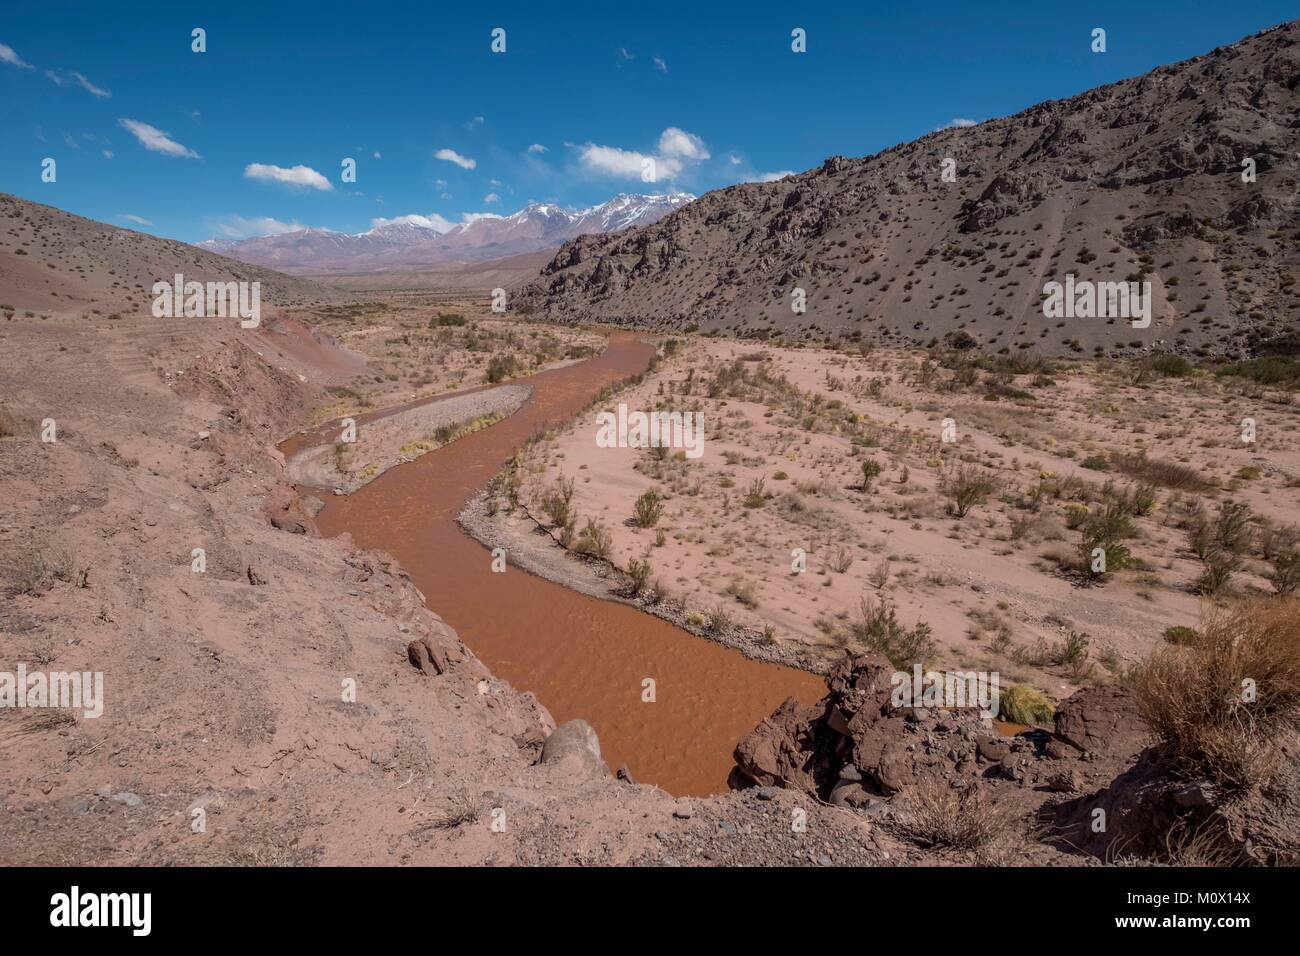 Argentina,San Juan province,Barreal,Rio de los Patos valley laden with alluvial deposits,the valley where General - Stock Image